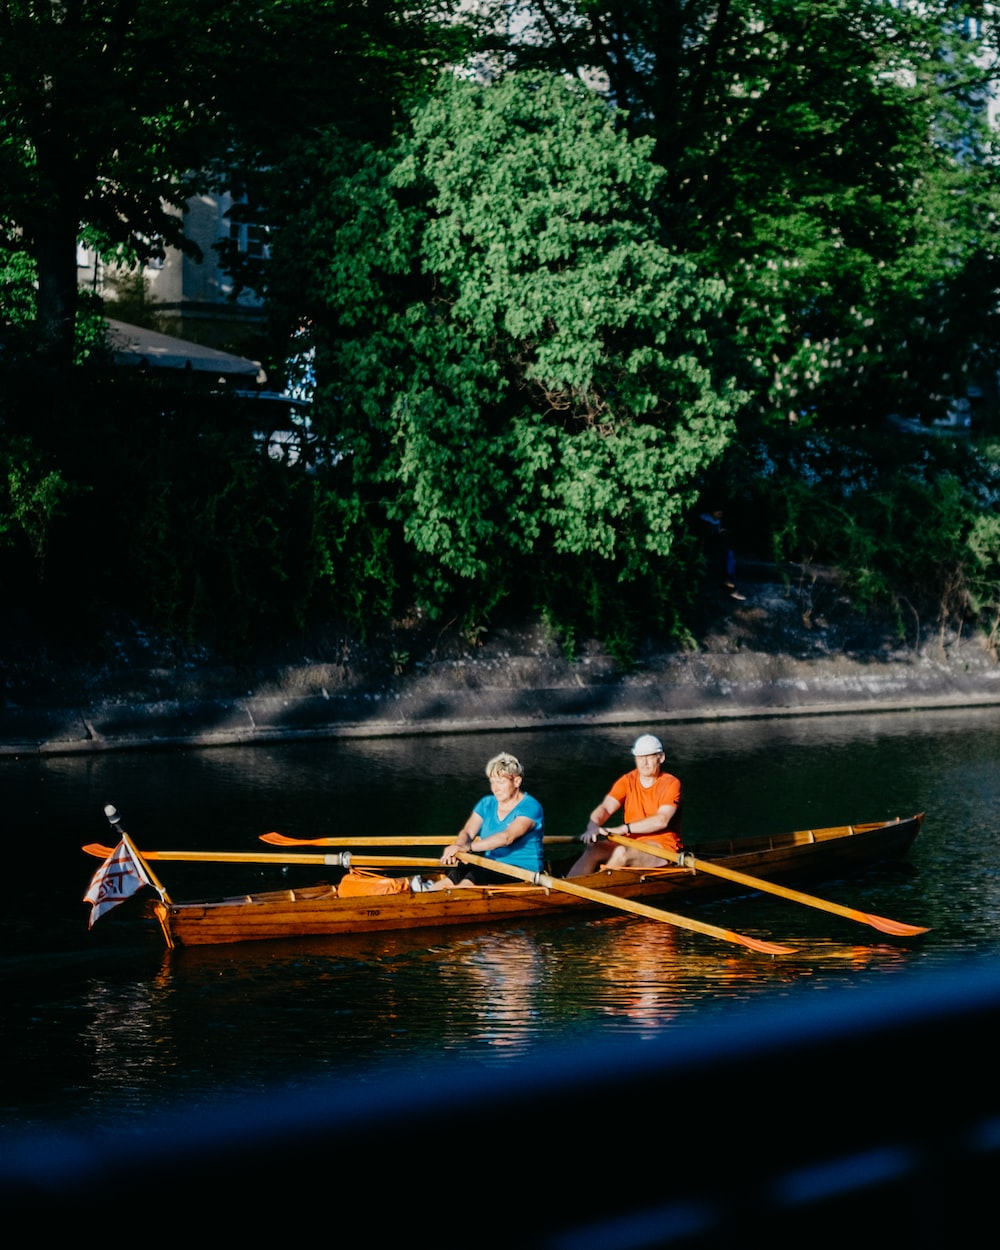 man and woman rowing in boat